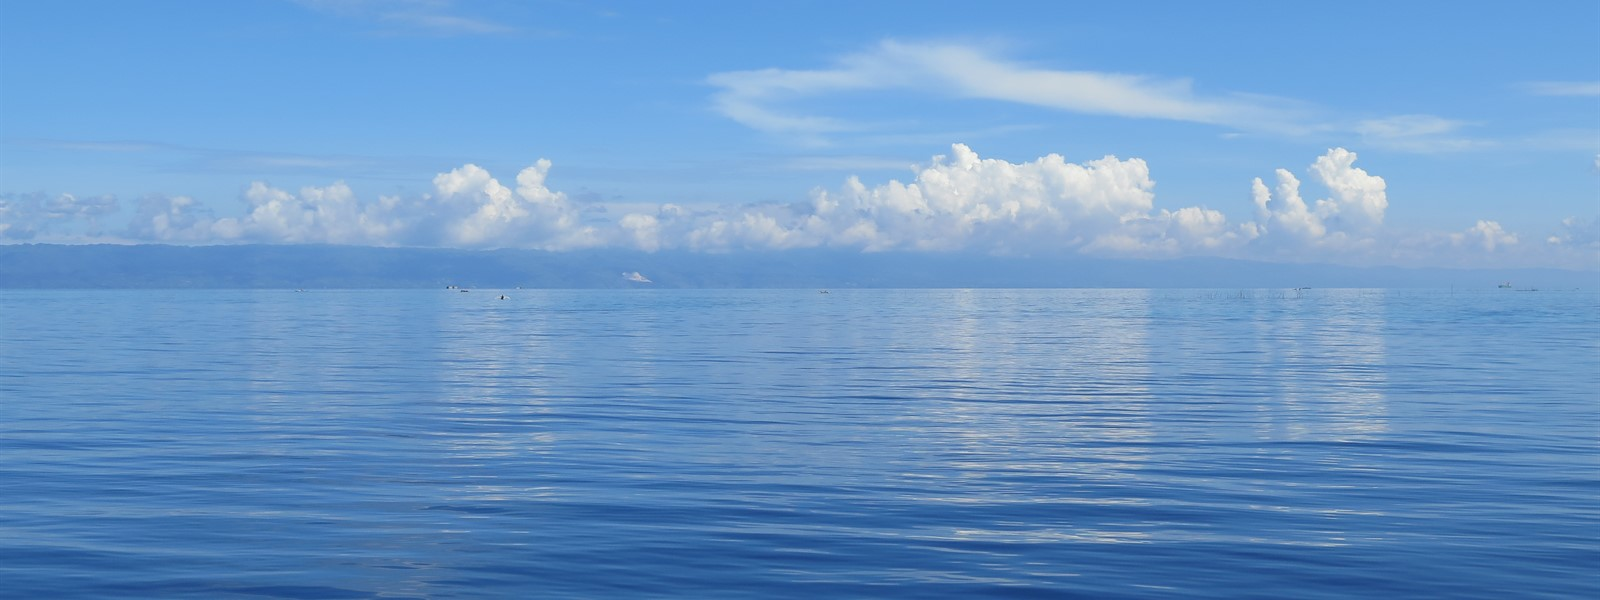 Picture of the ocean and sky in Panglao.